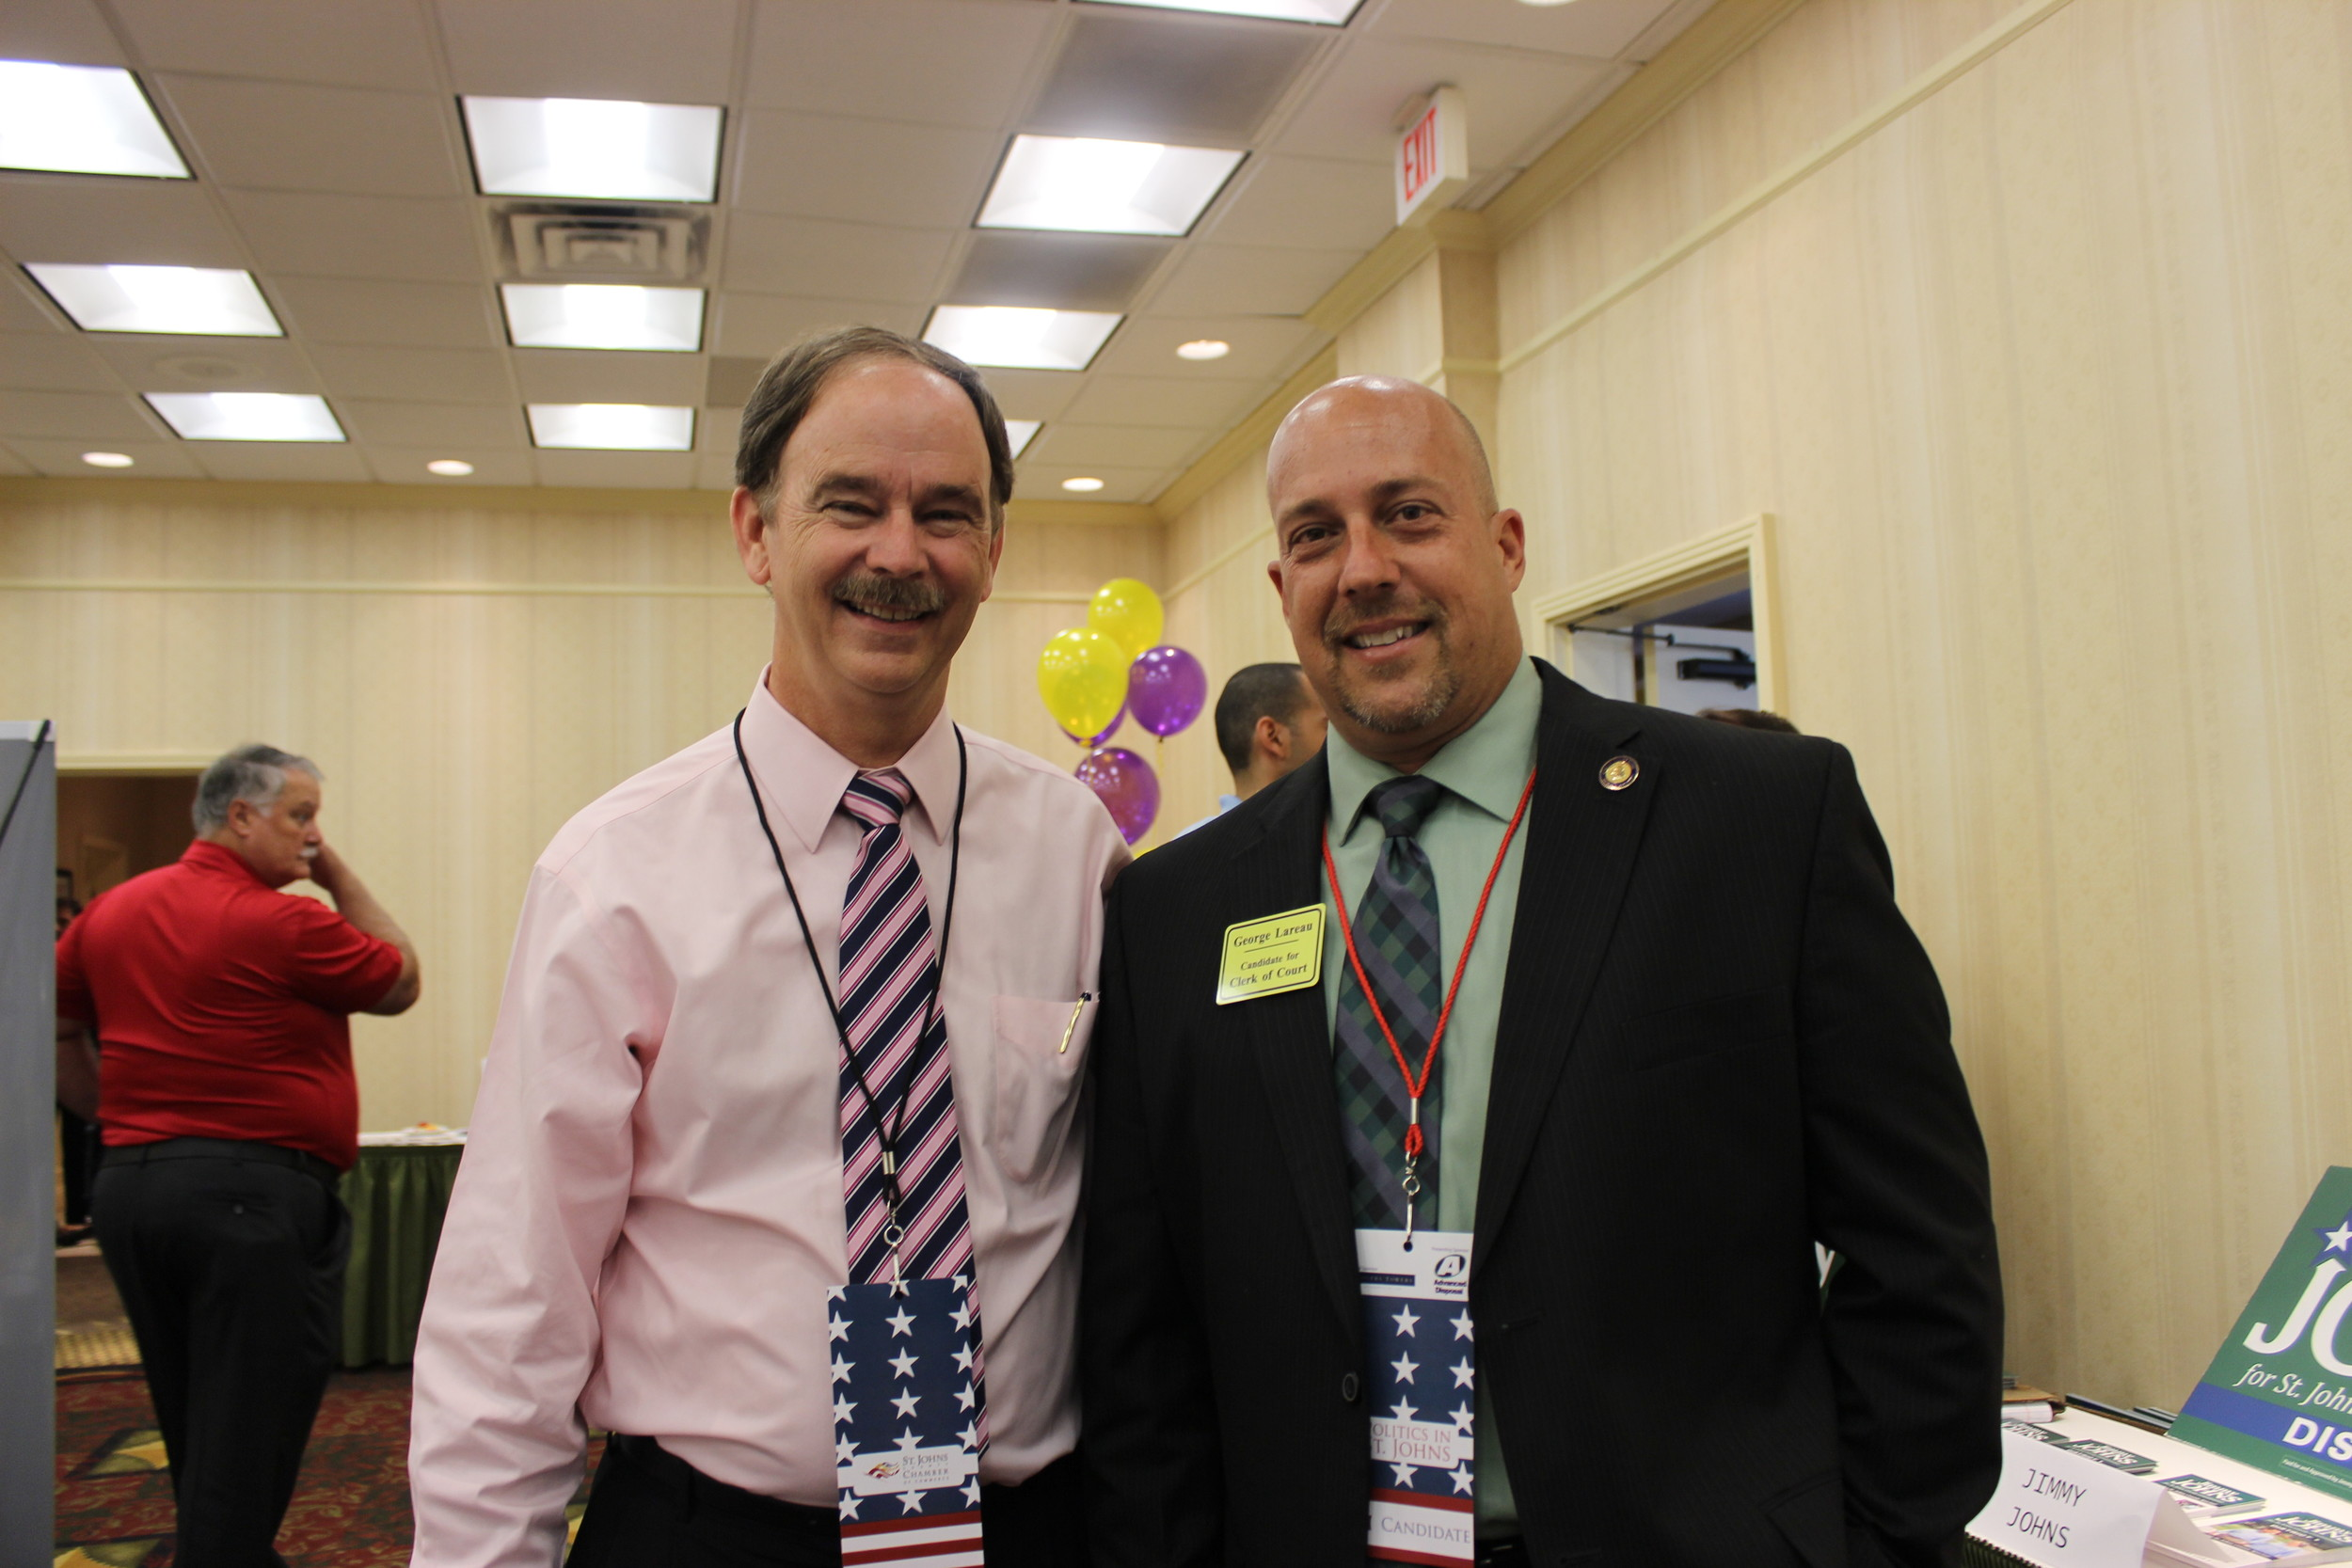 State Rep. and 4th Congressional District Candidate Lake Ray and Clerk of Circuit Court Candidate George Lareau